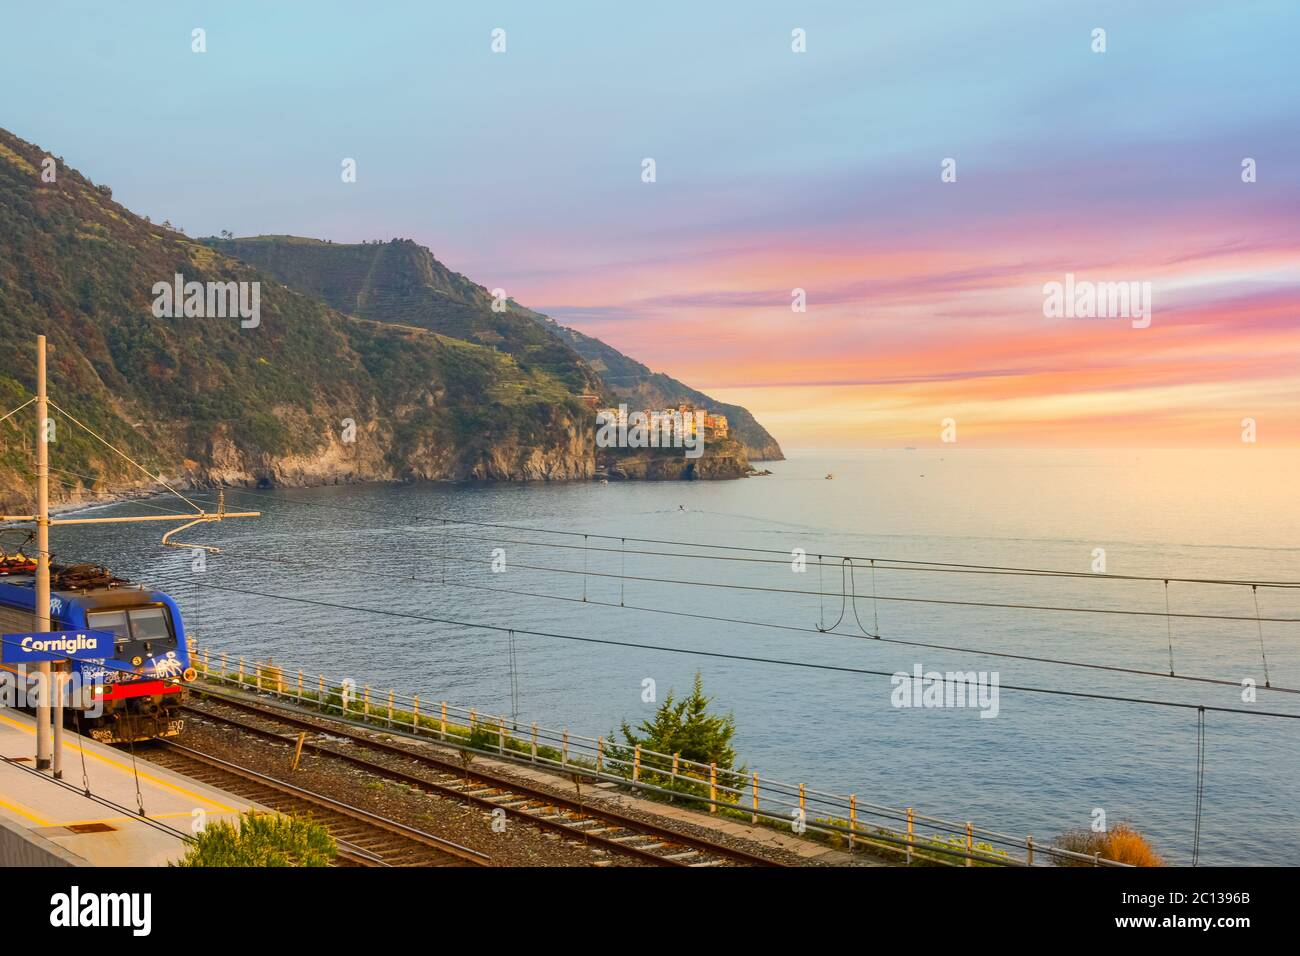 Sunset on the Cinque Terre as the train heads into the Corniglia railway station on the coast of Italy Stock Photo